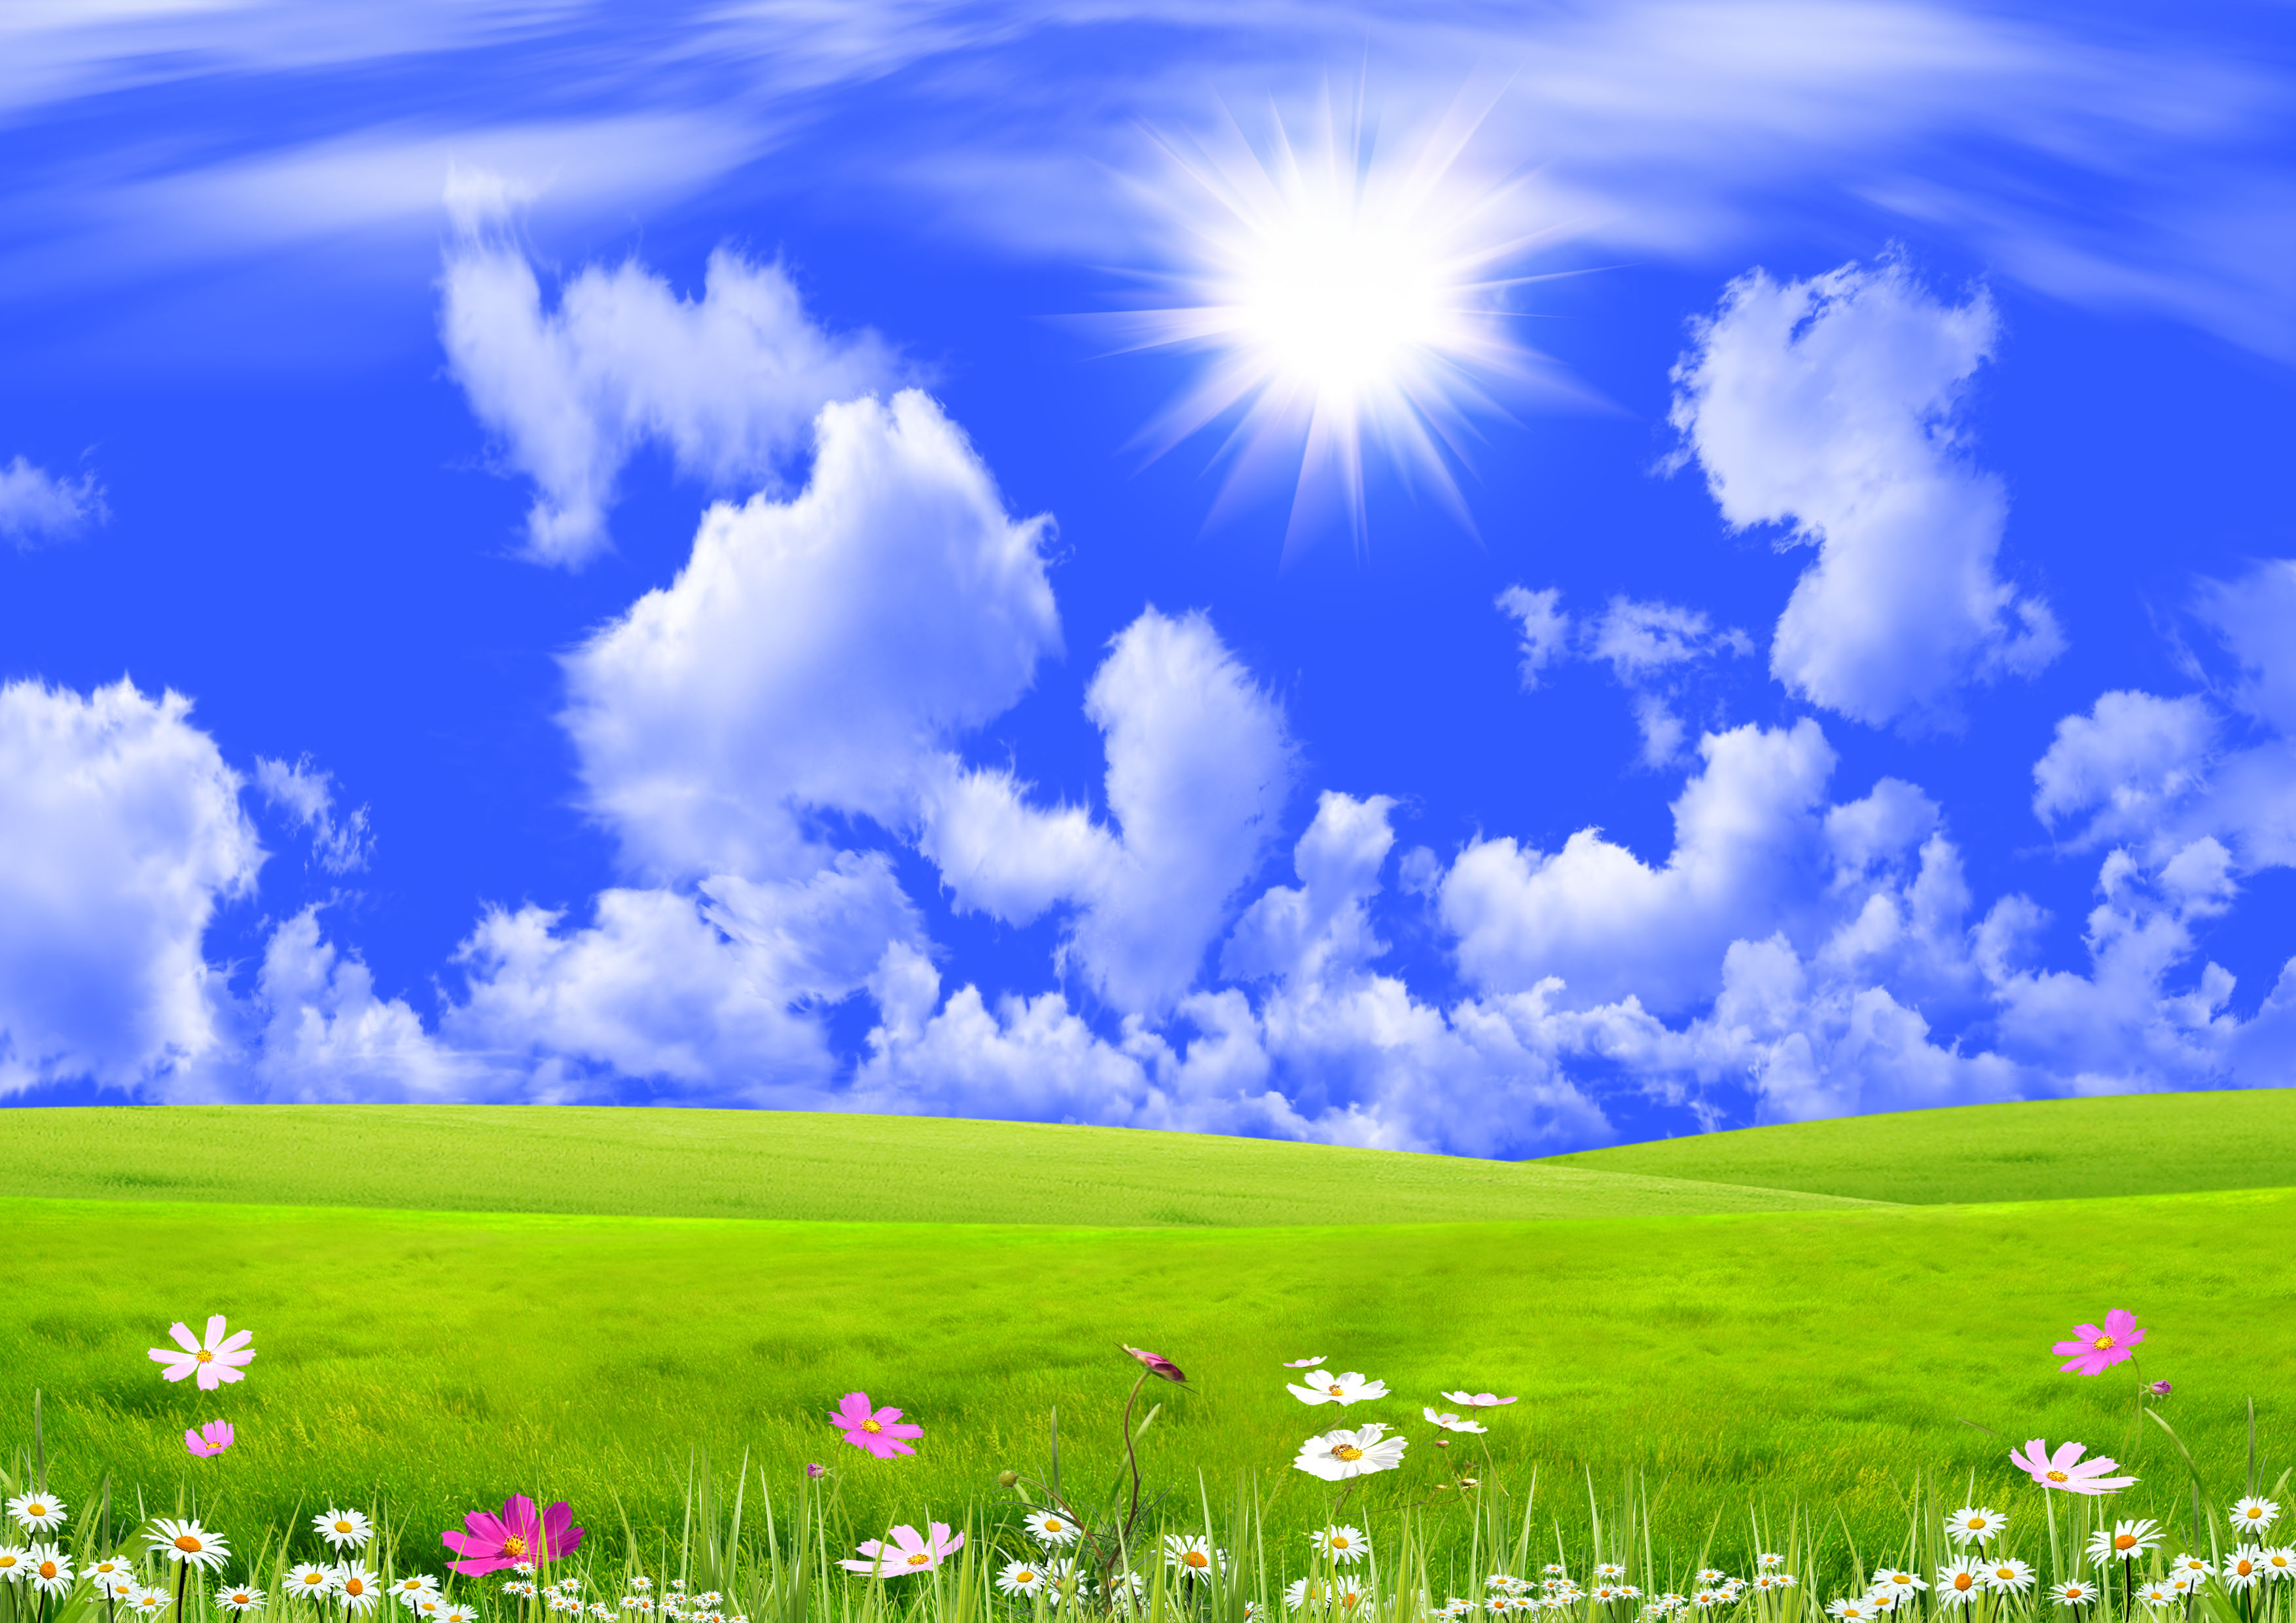 Sunshine Nature Background 302.56 Kb